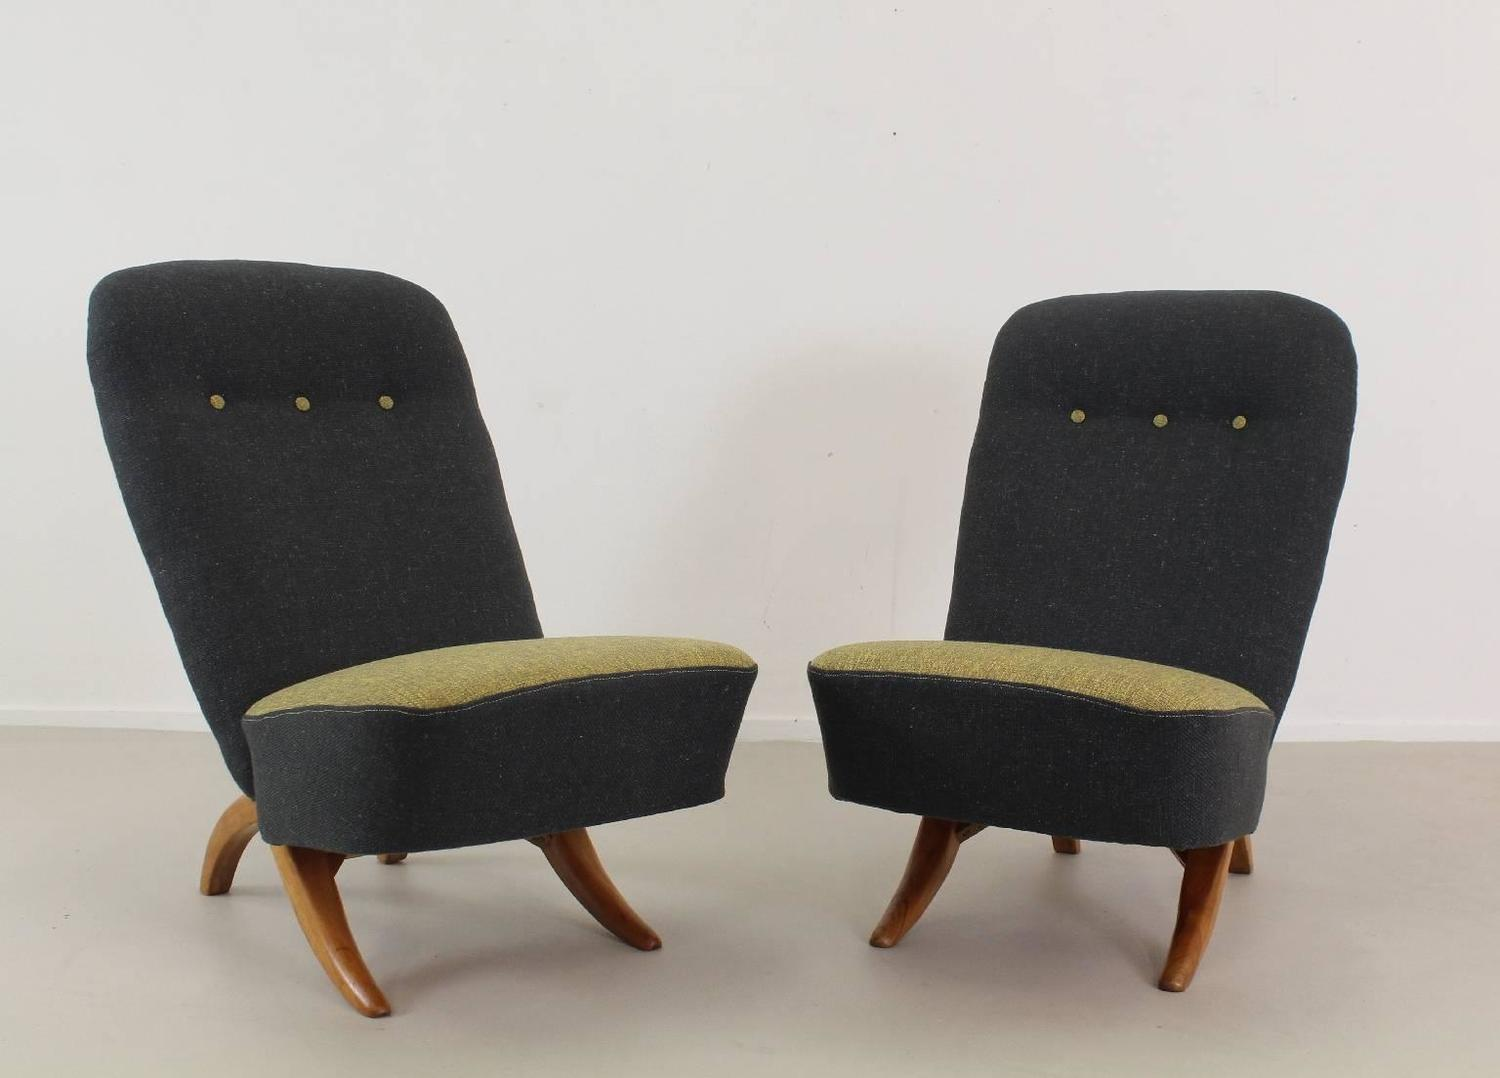 Intelligent Early Two Pieces Easy Chair Bytheo Ruth For Artifort Dux For Sale At 1stdibs